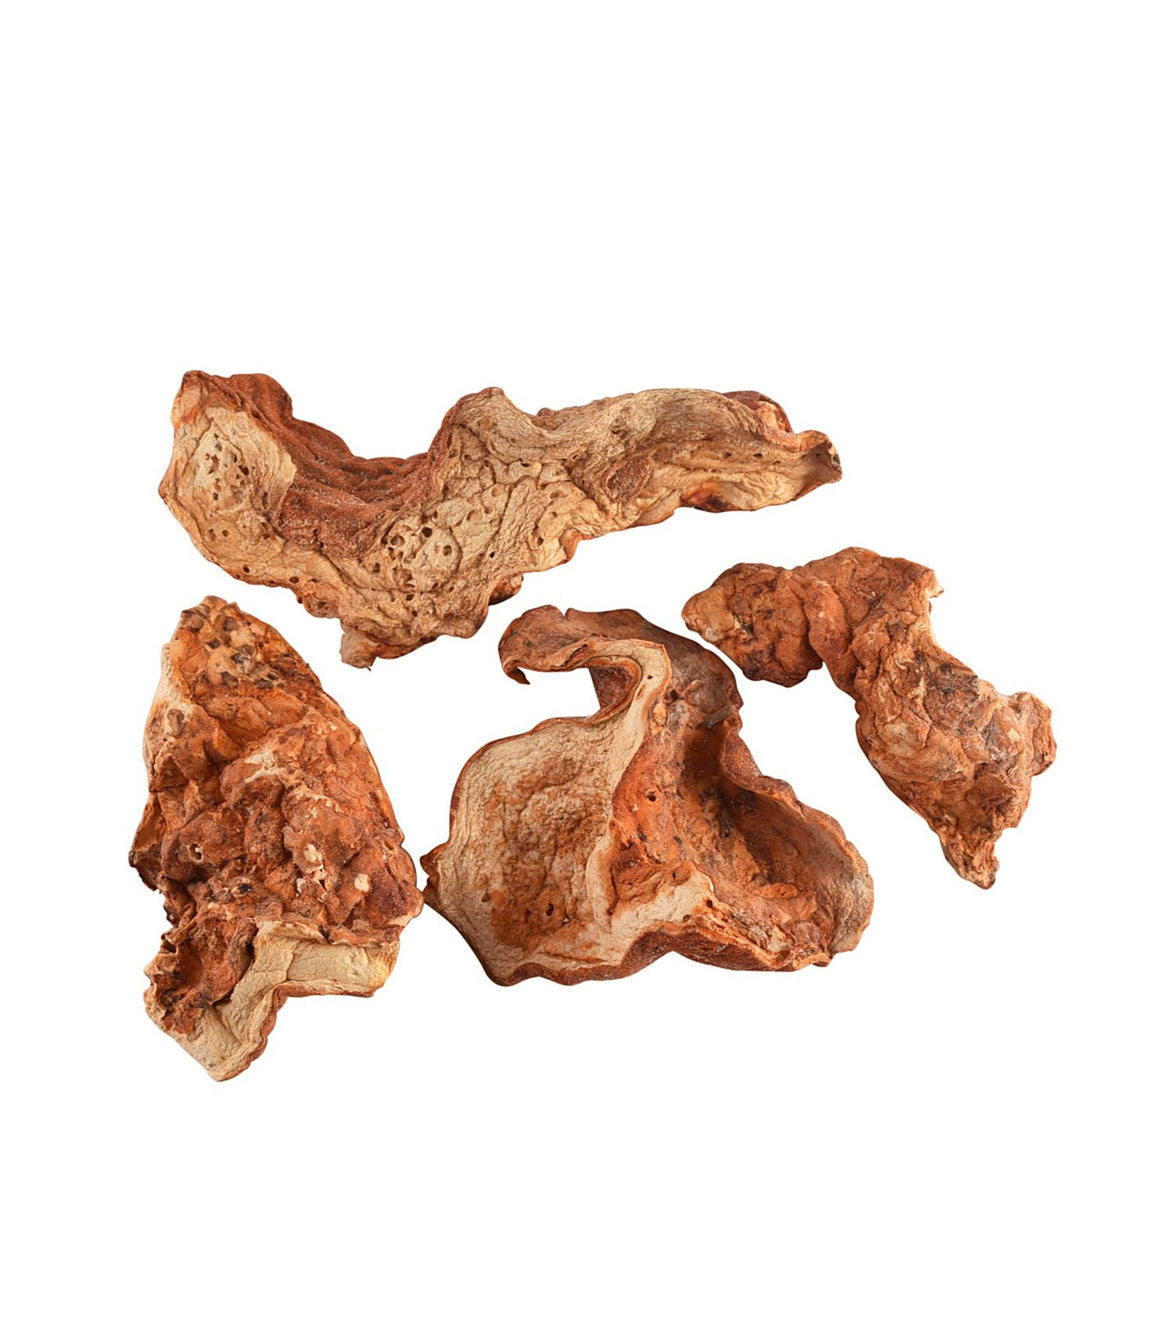 Wild Lobster Mushrooms - Sullivan Street Tea & Spice Company